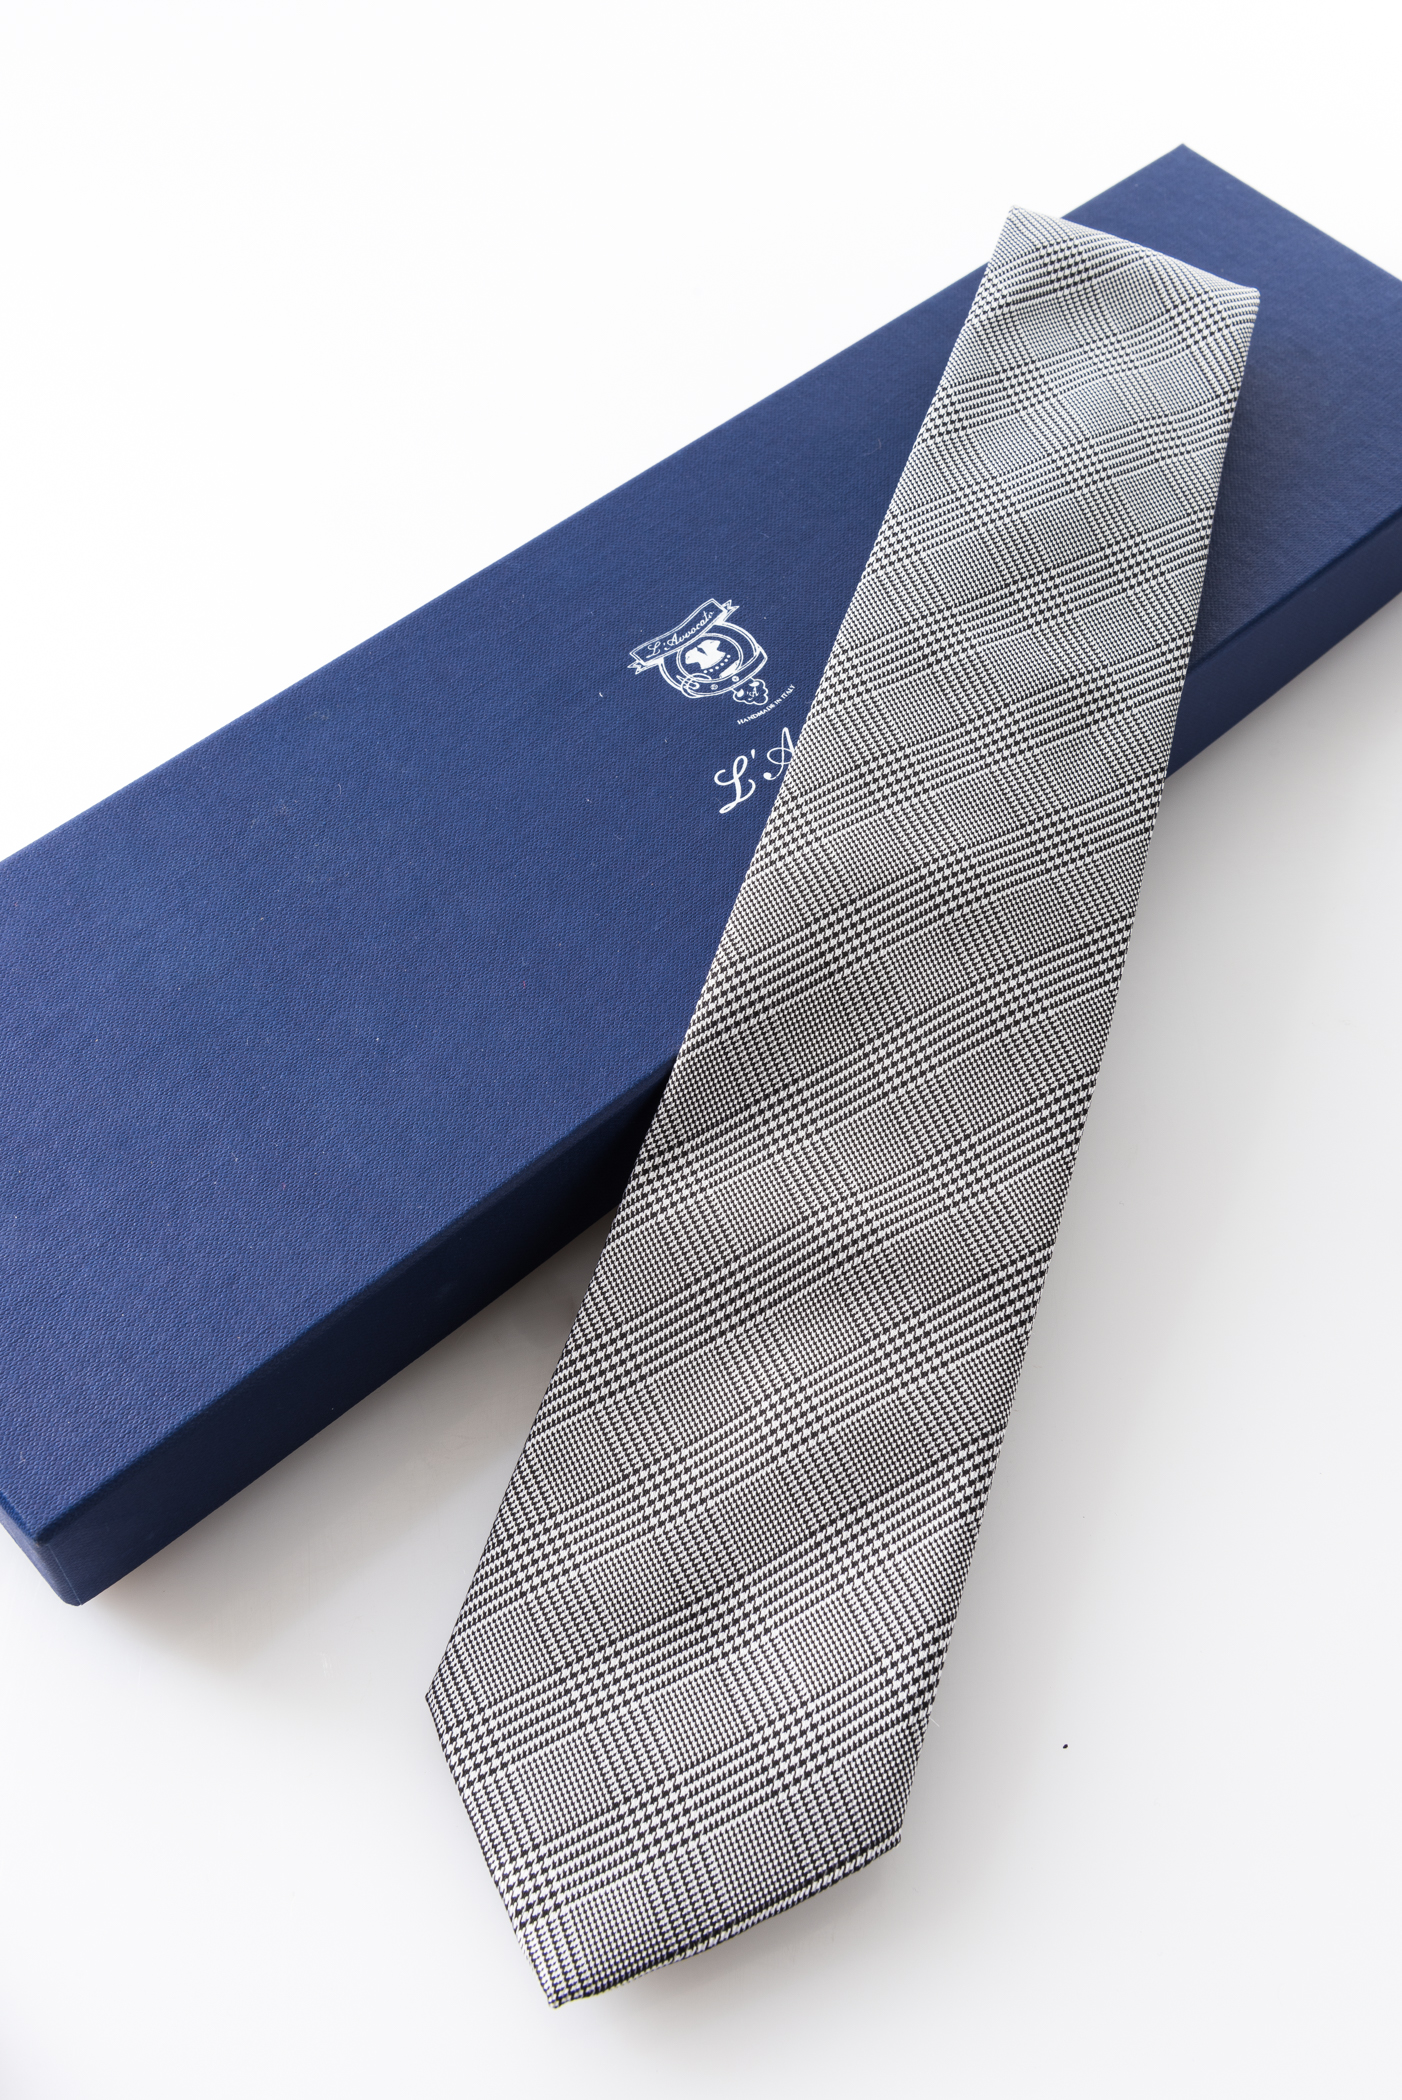 Lined Tie – John Grigio – and its packaging